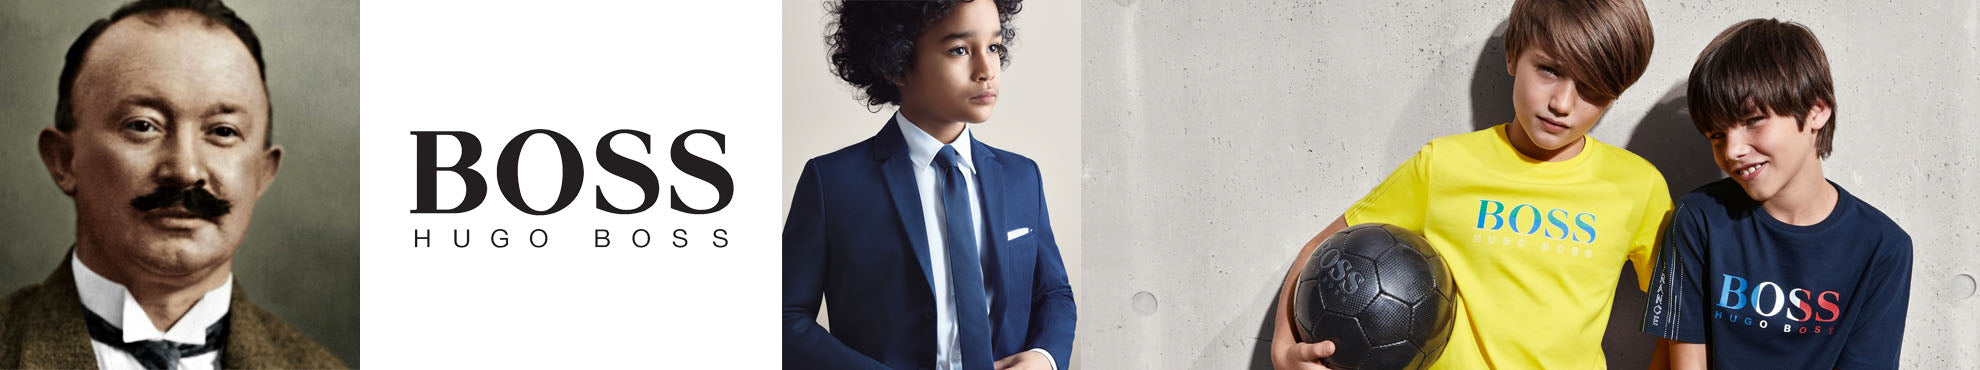 HUGO BOSS - Designer children's clothing, online store, outlet and boutique